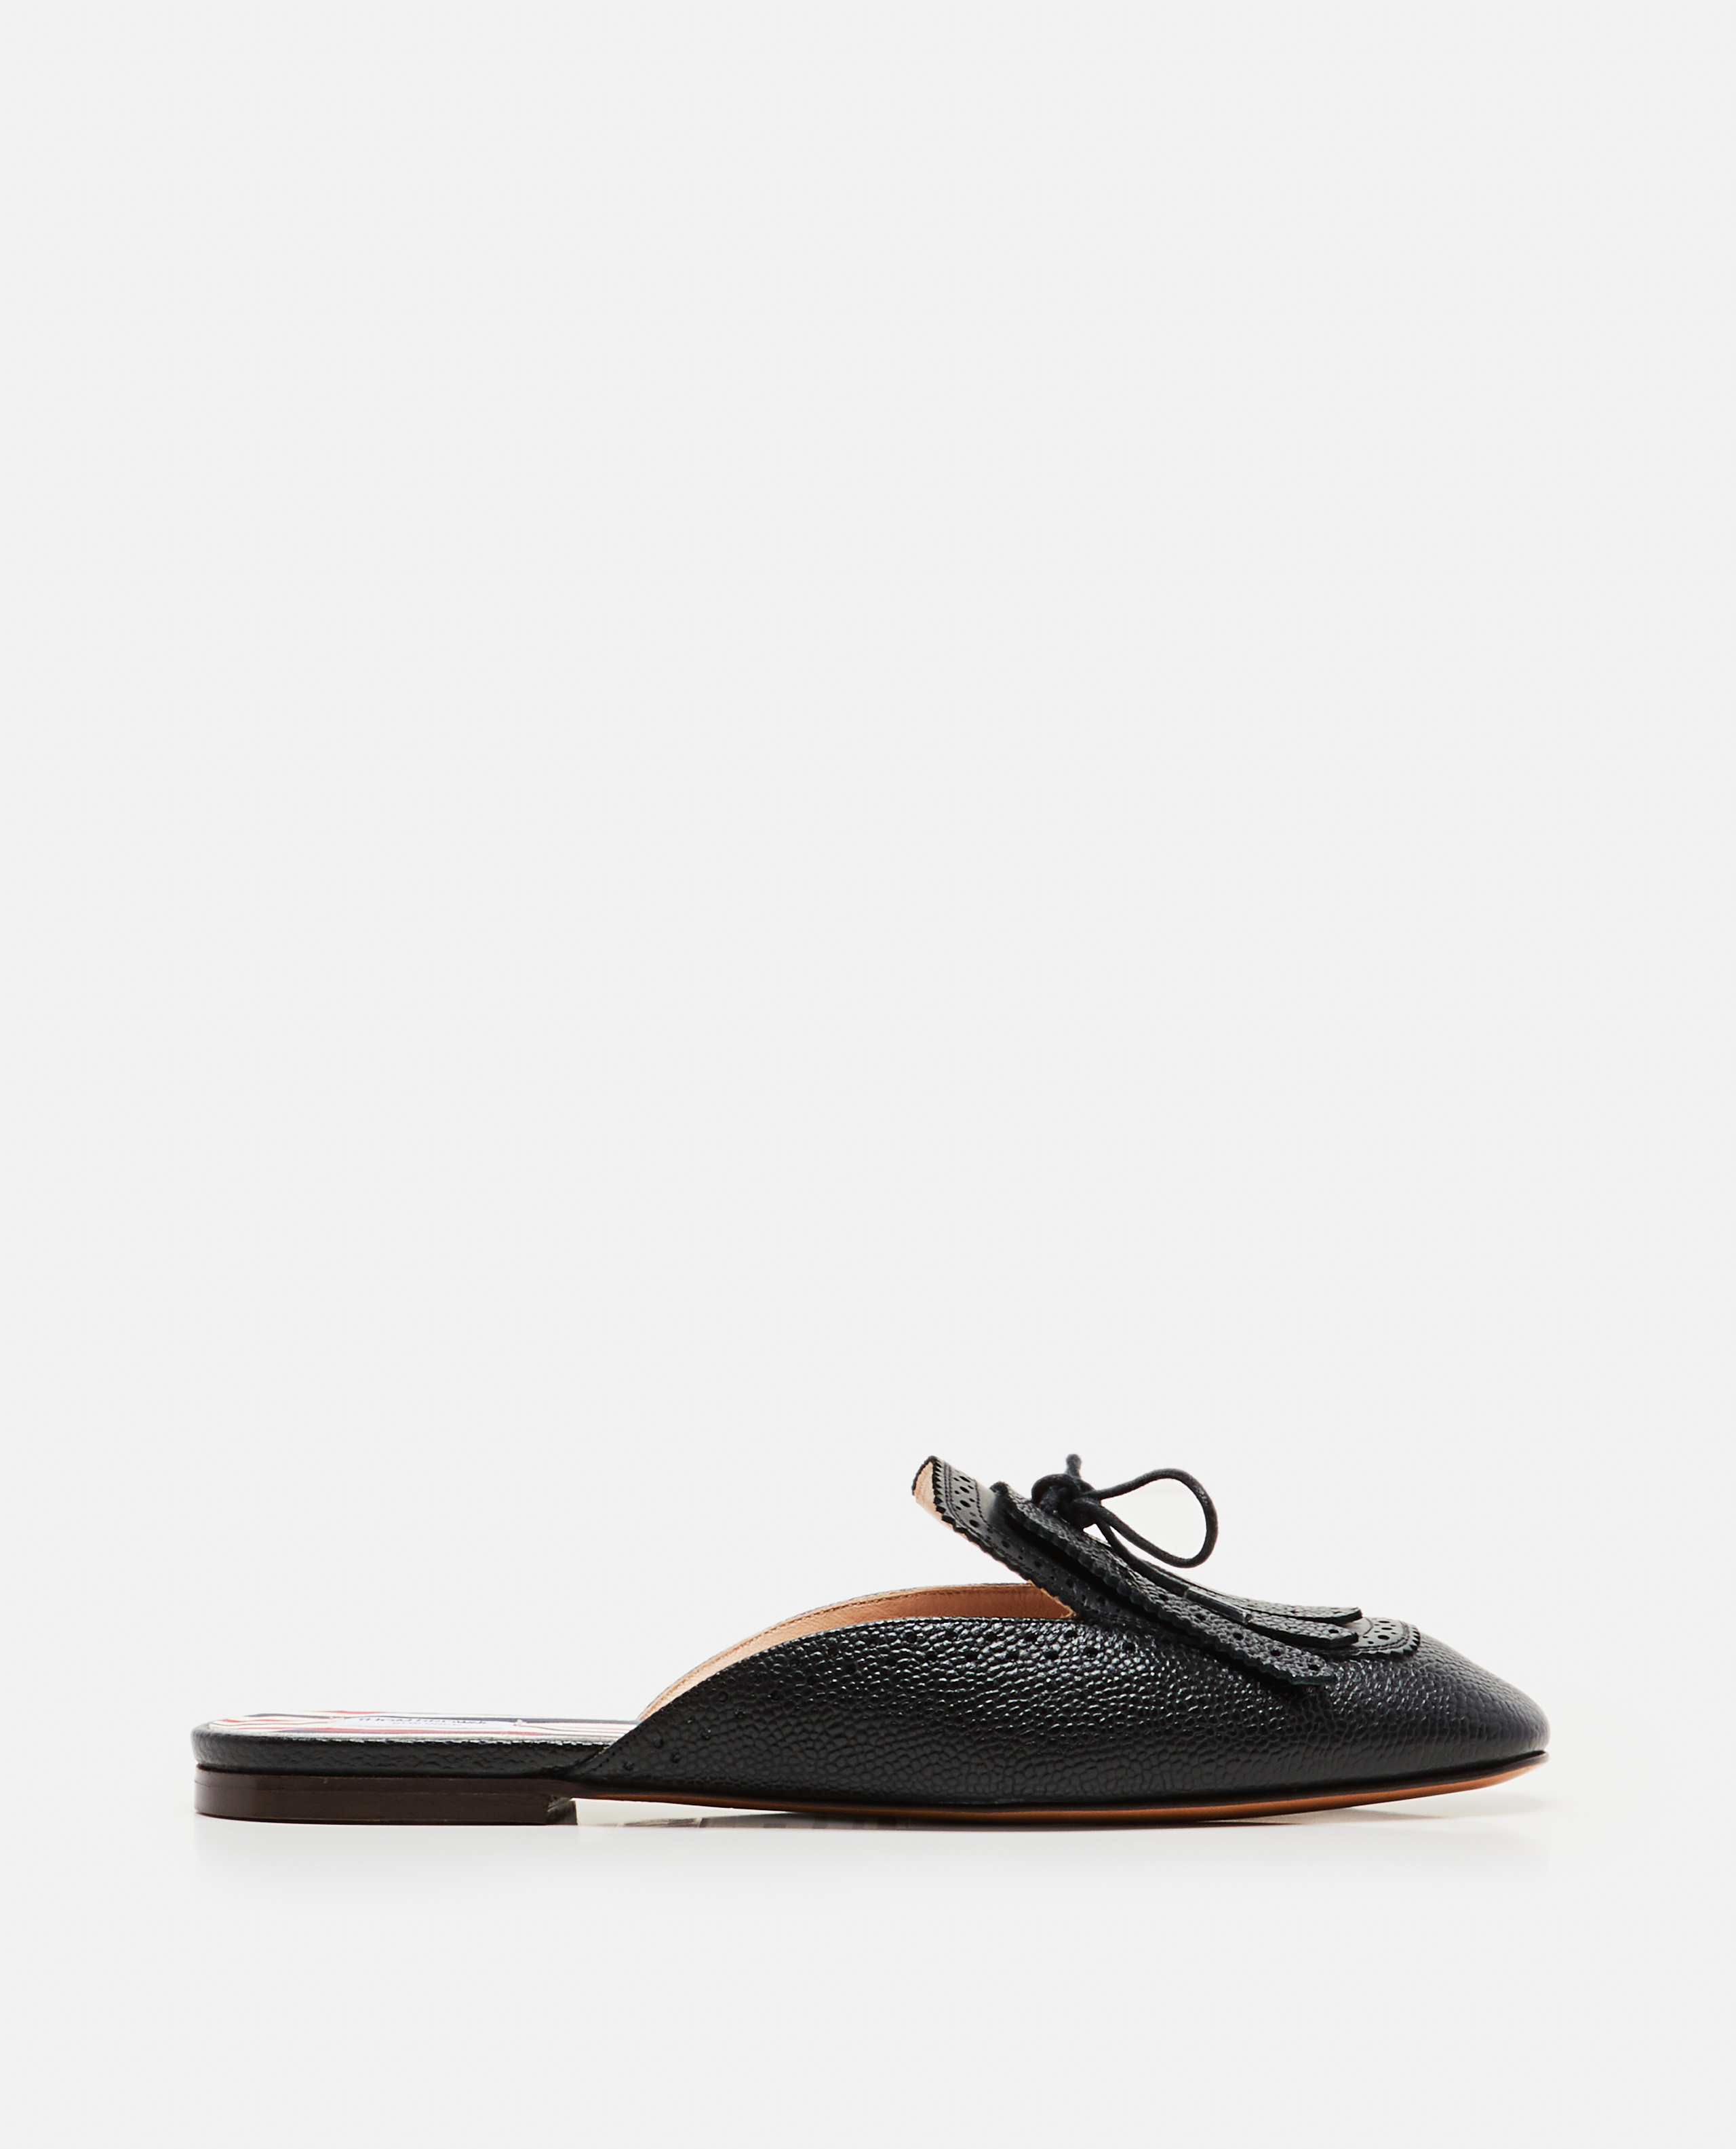 Low leather slipper